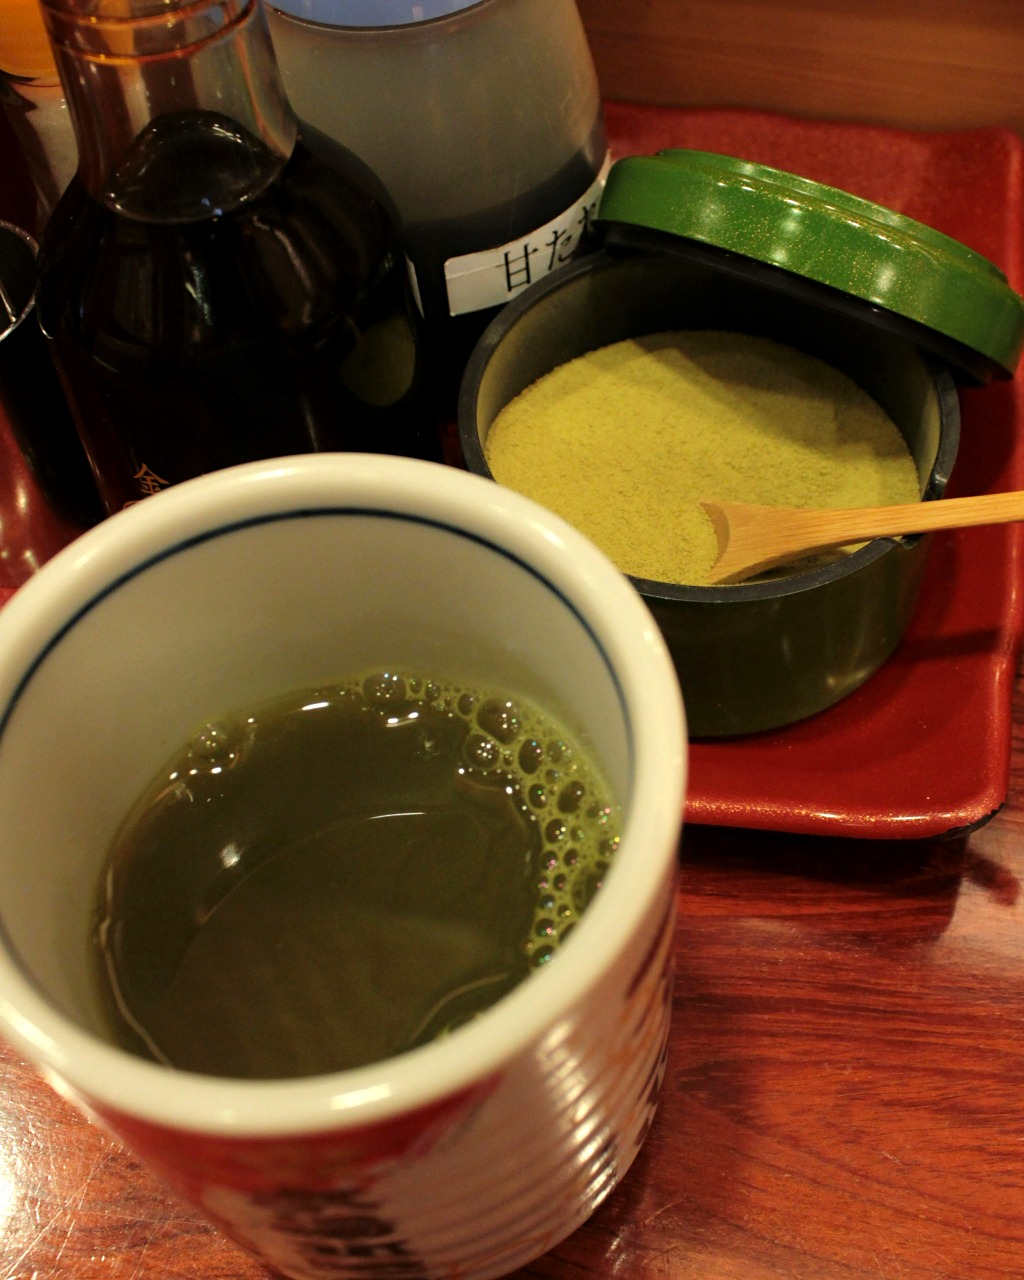 Agari green tea at a sushi train restaurant in Kanazawa, Japan